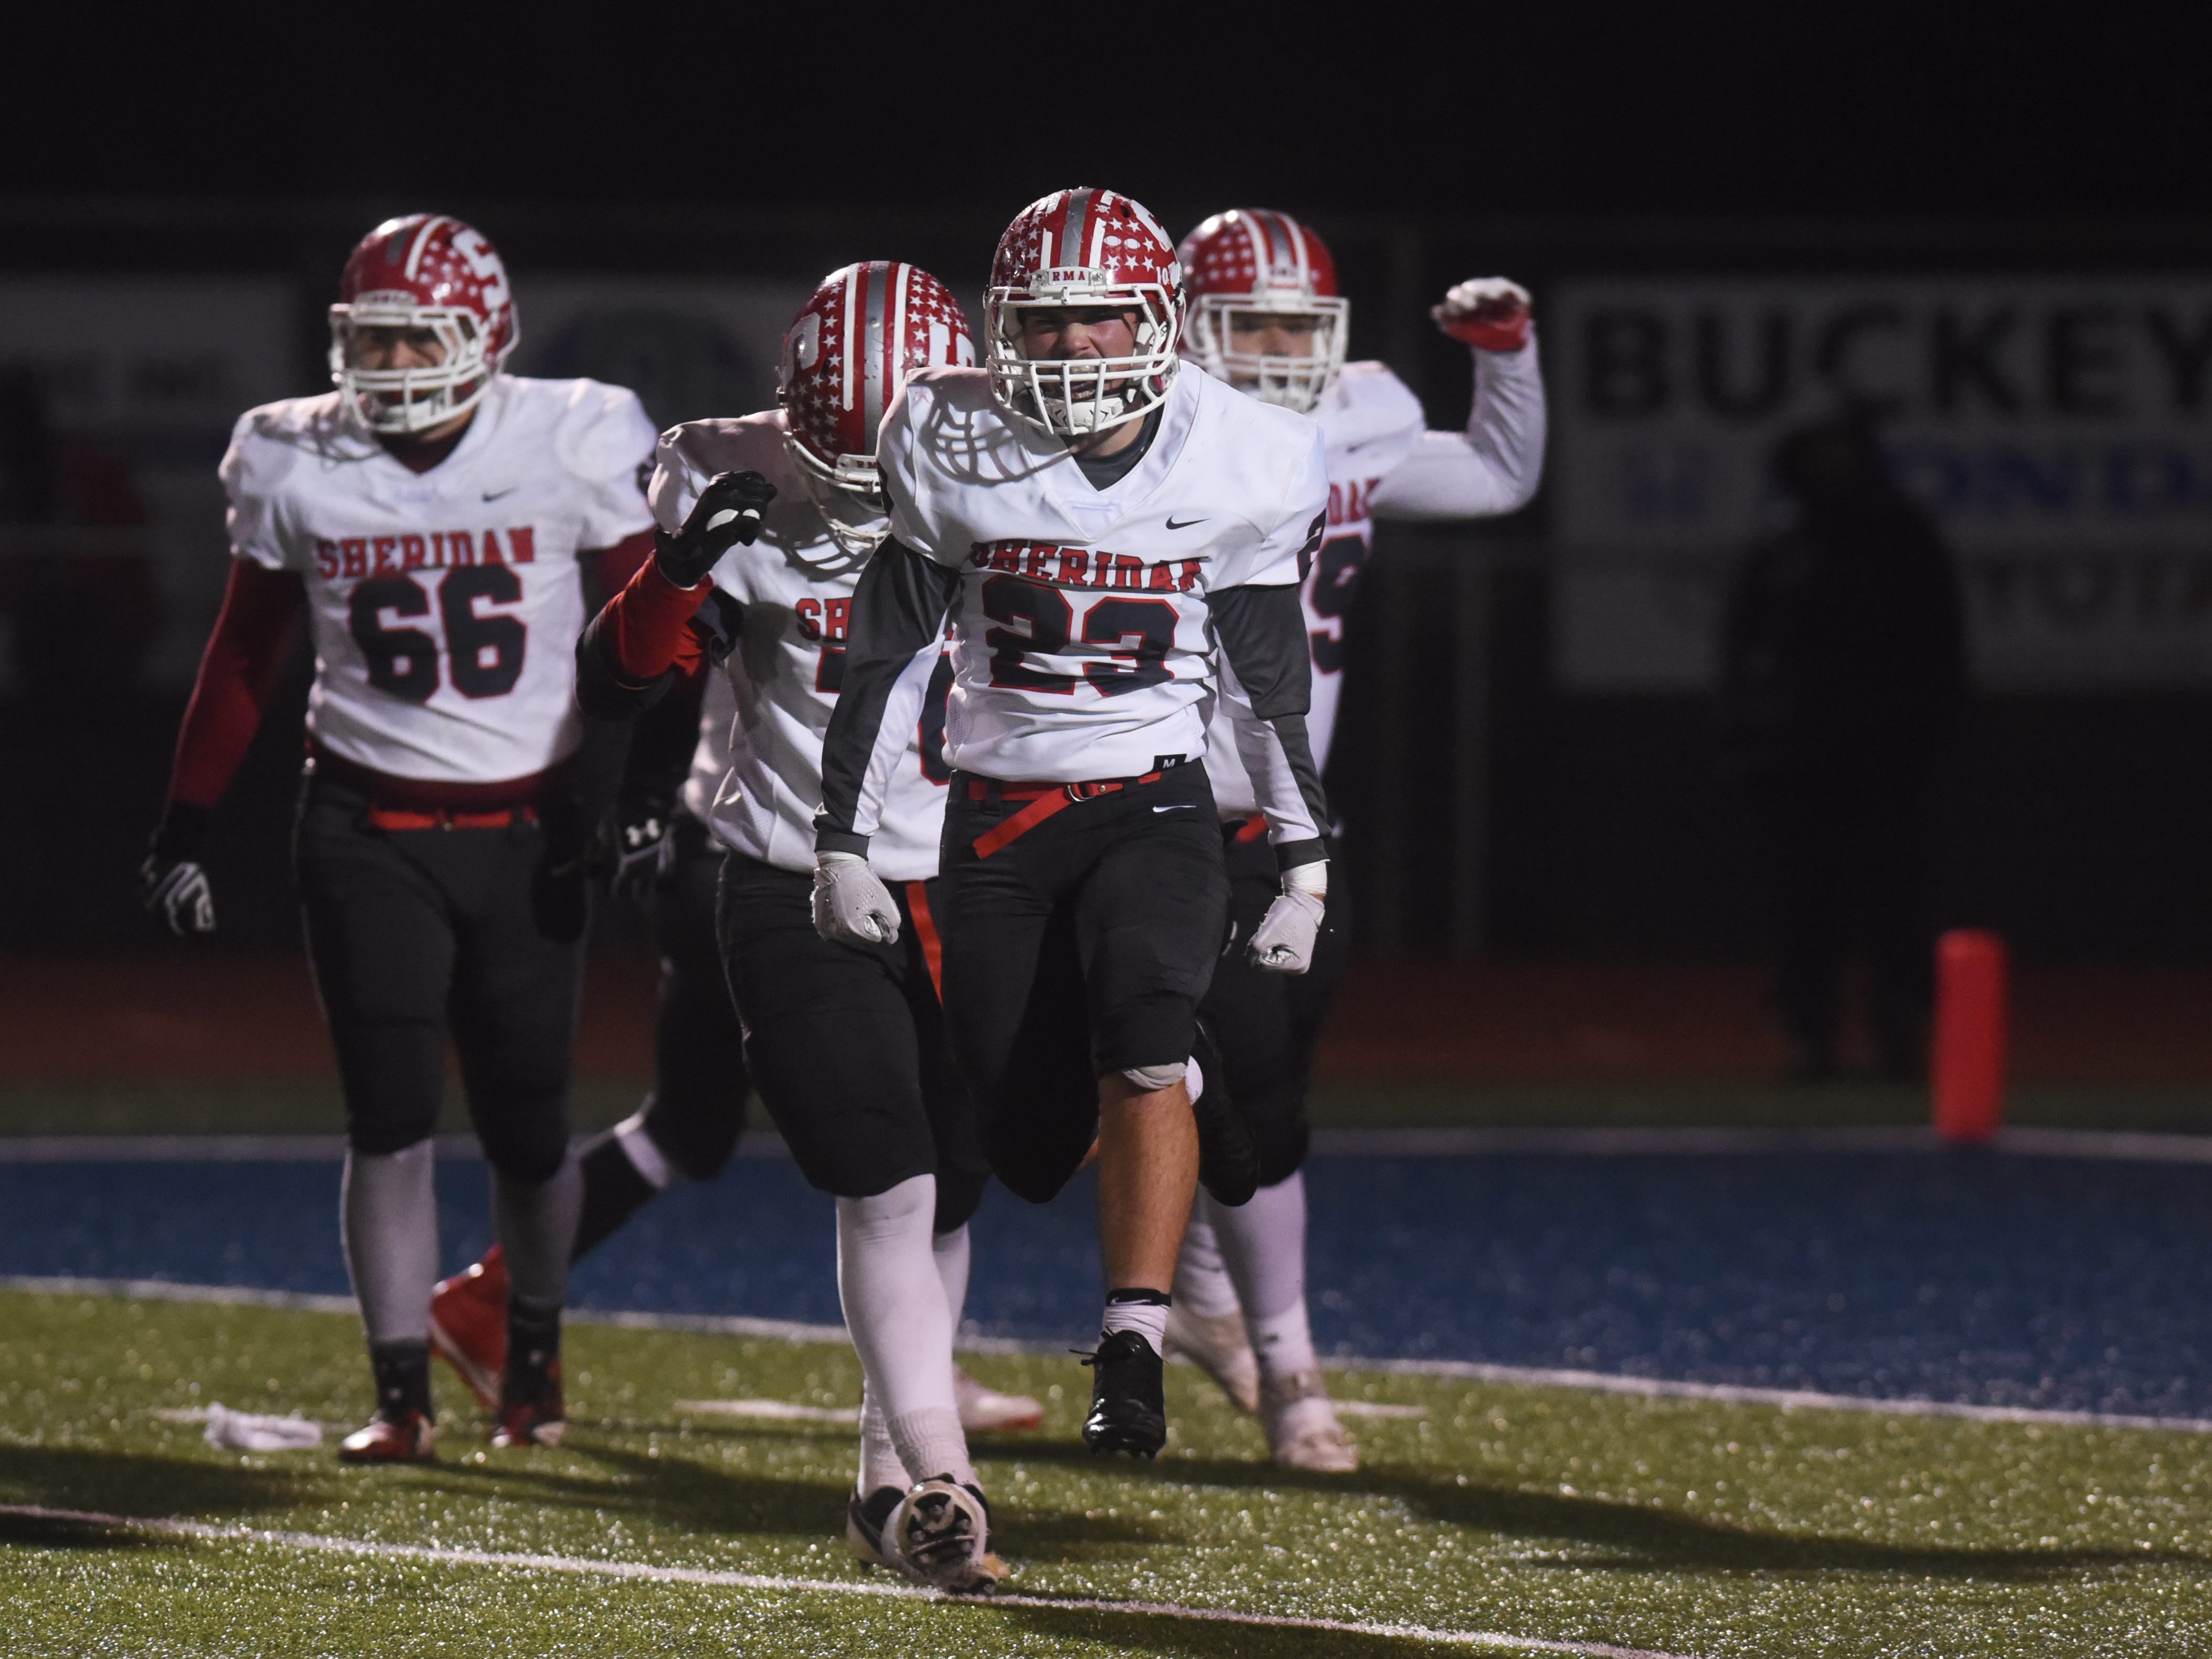 Sheridan celebrates a goal-line stand as the first half ends against Columbus Eastmoor Academy in a Division III, Region 11 final on Friday night in Lancaster. Sheridan lost, 20-14, to cap an 11-2 season.